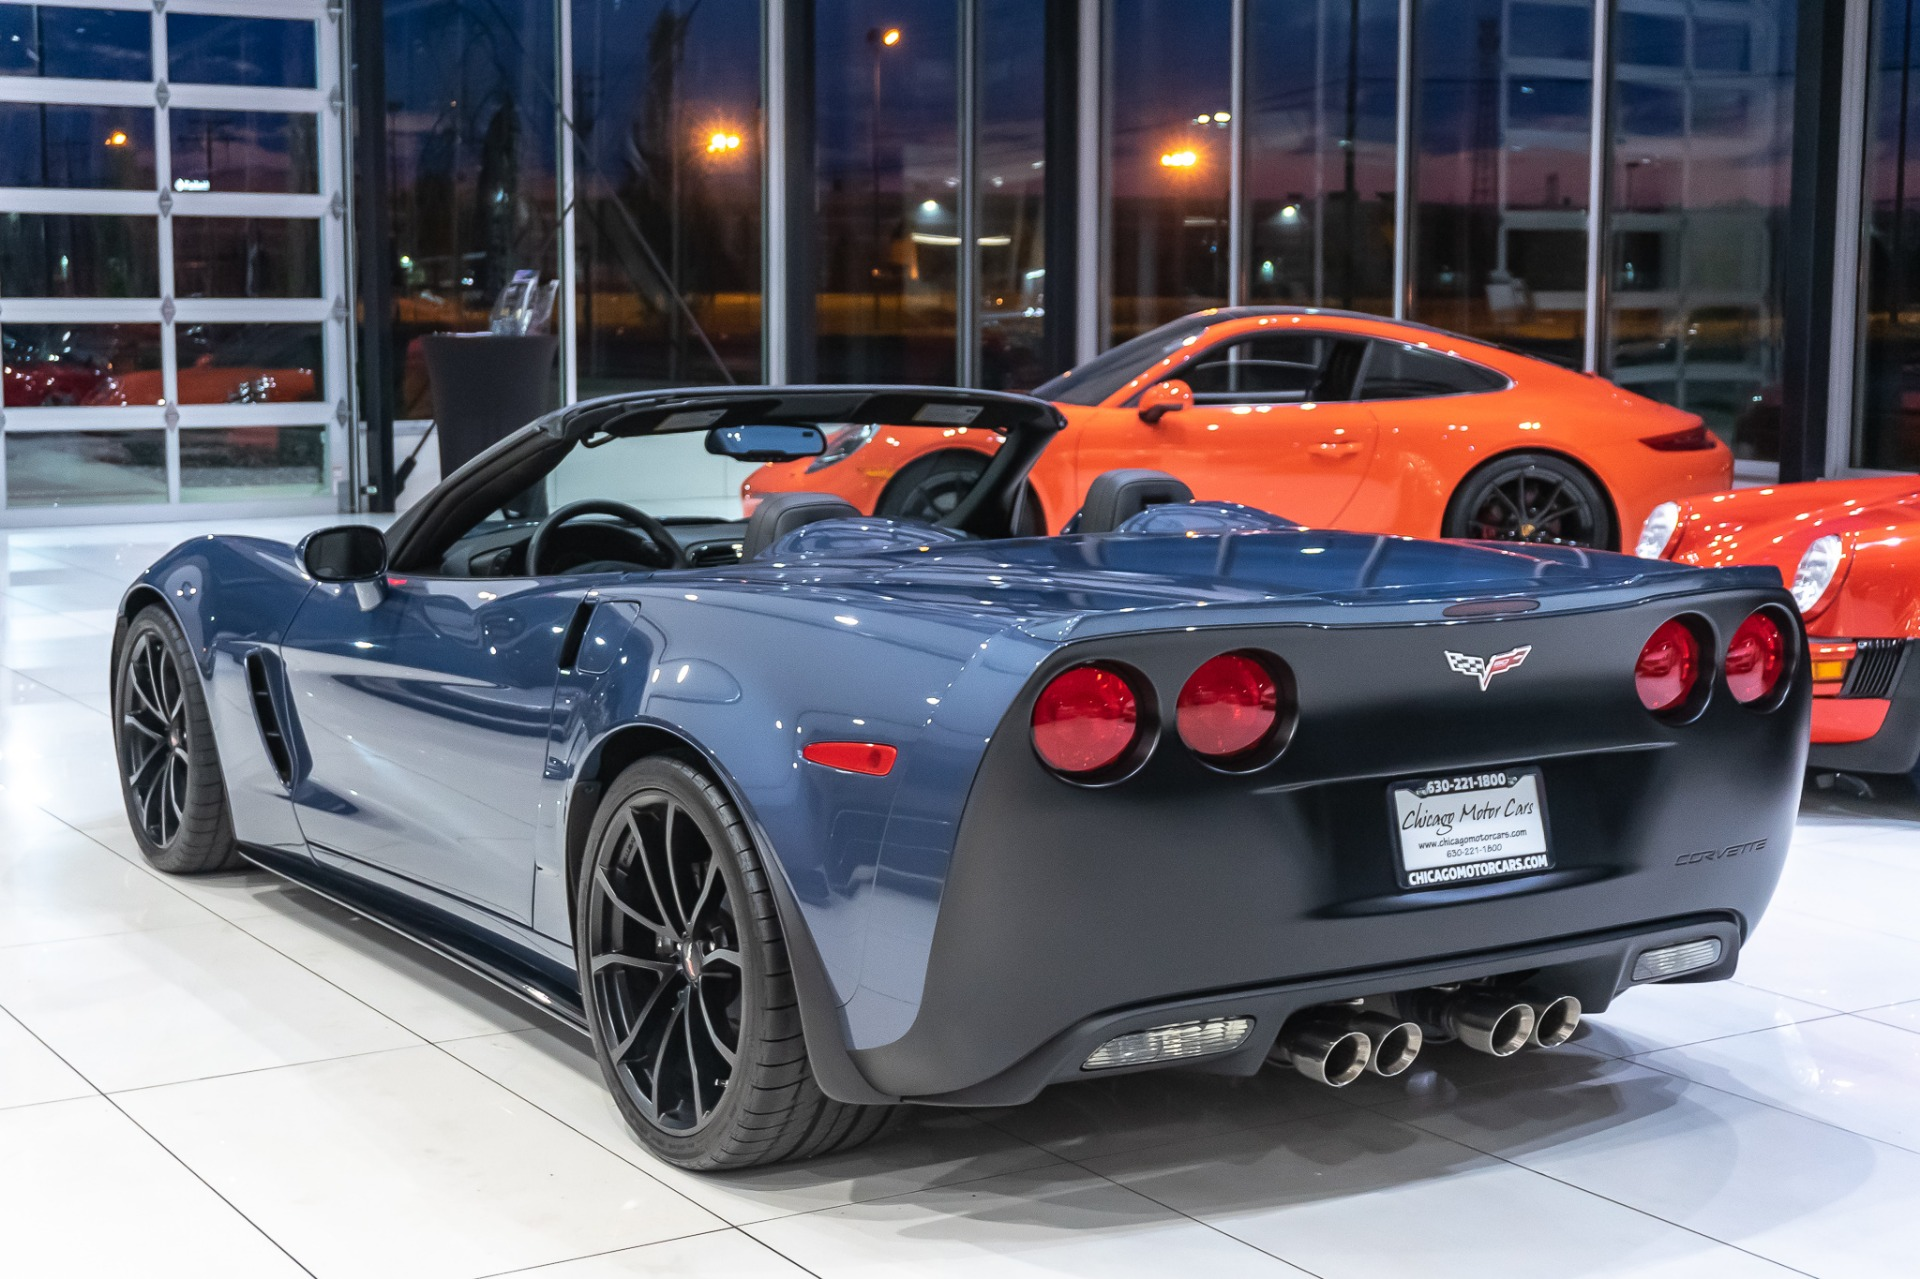 Used-2013-Chevrolet-Corvette-427-1SB-Convertible-Collector-Edition-Only-2k-Miles